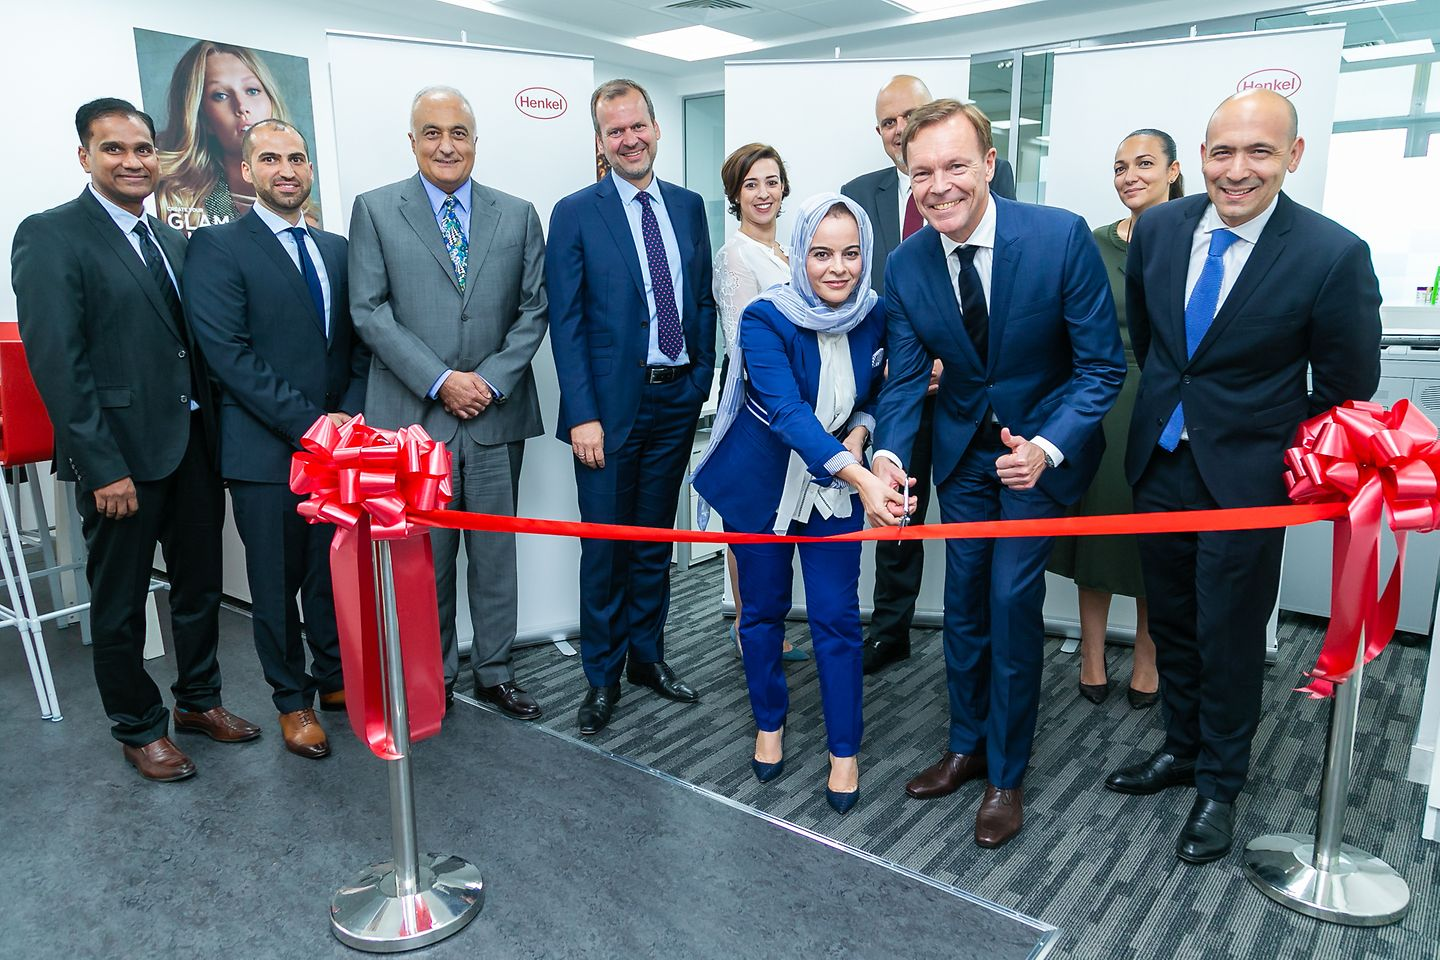 Jens-Martin Schwärzler, Executive Vice President Beauty Care (third from right) and Olfa Aouida, Head of R&D MEA, Beauty Care (sixth from left) during the ribbon cutting.